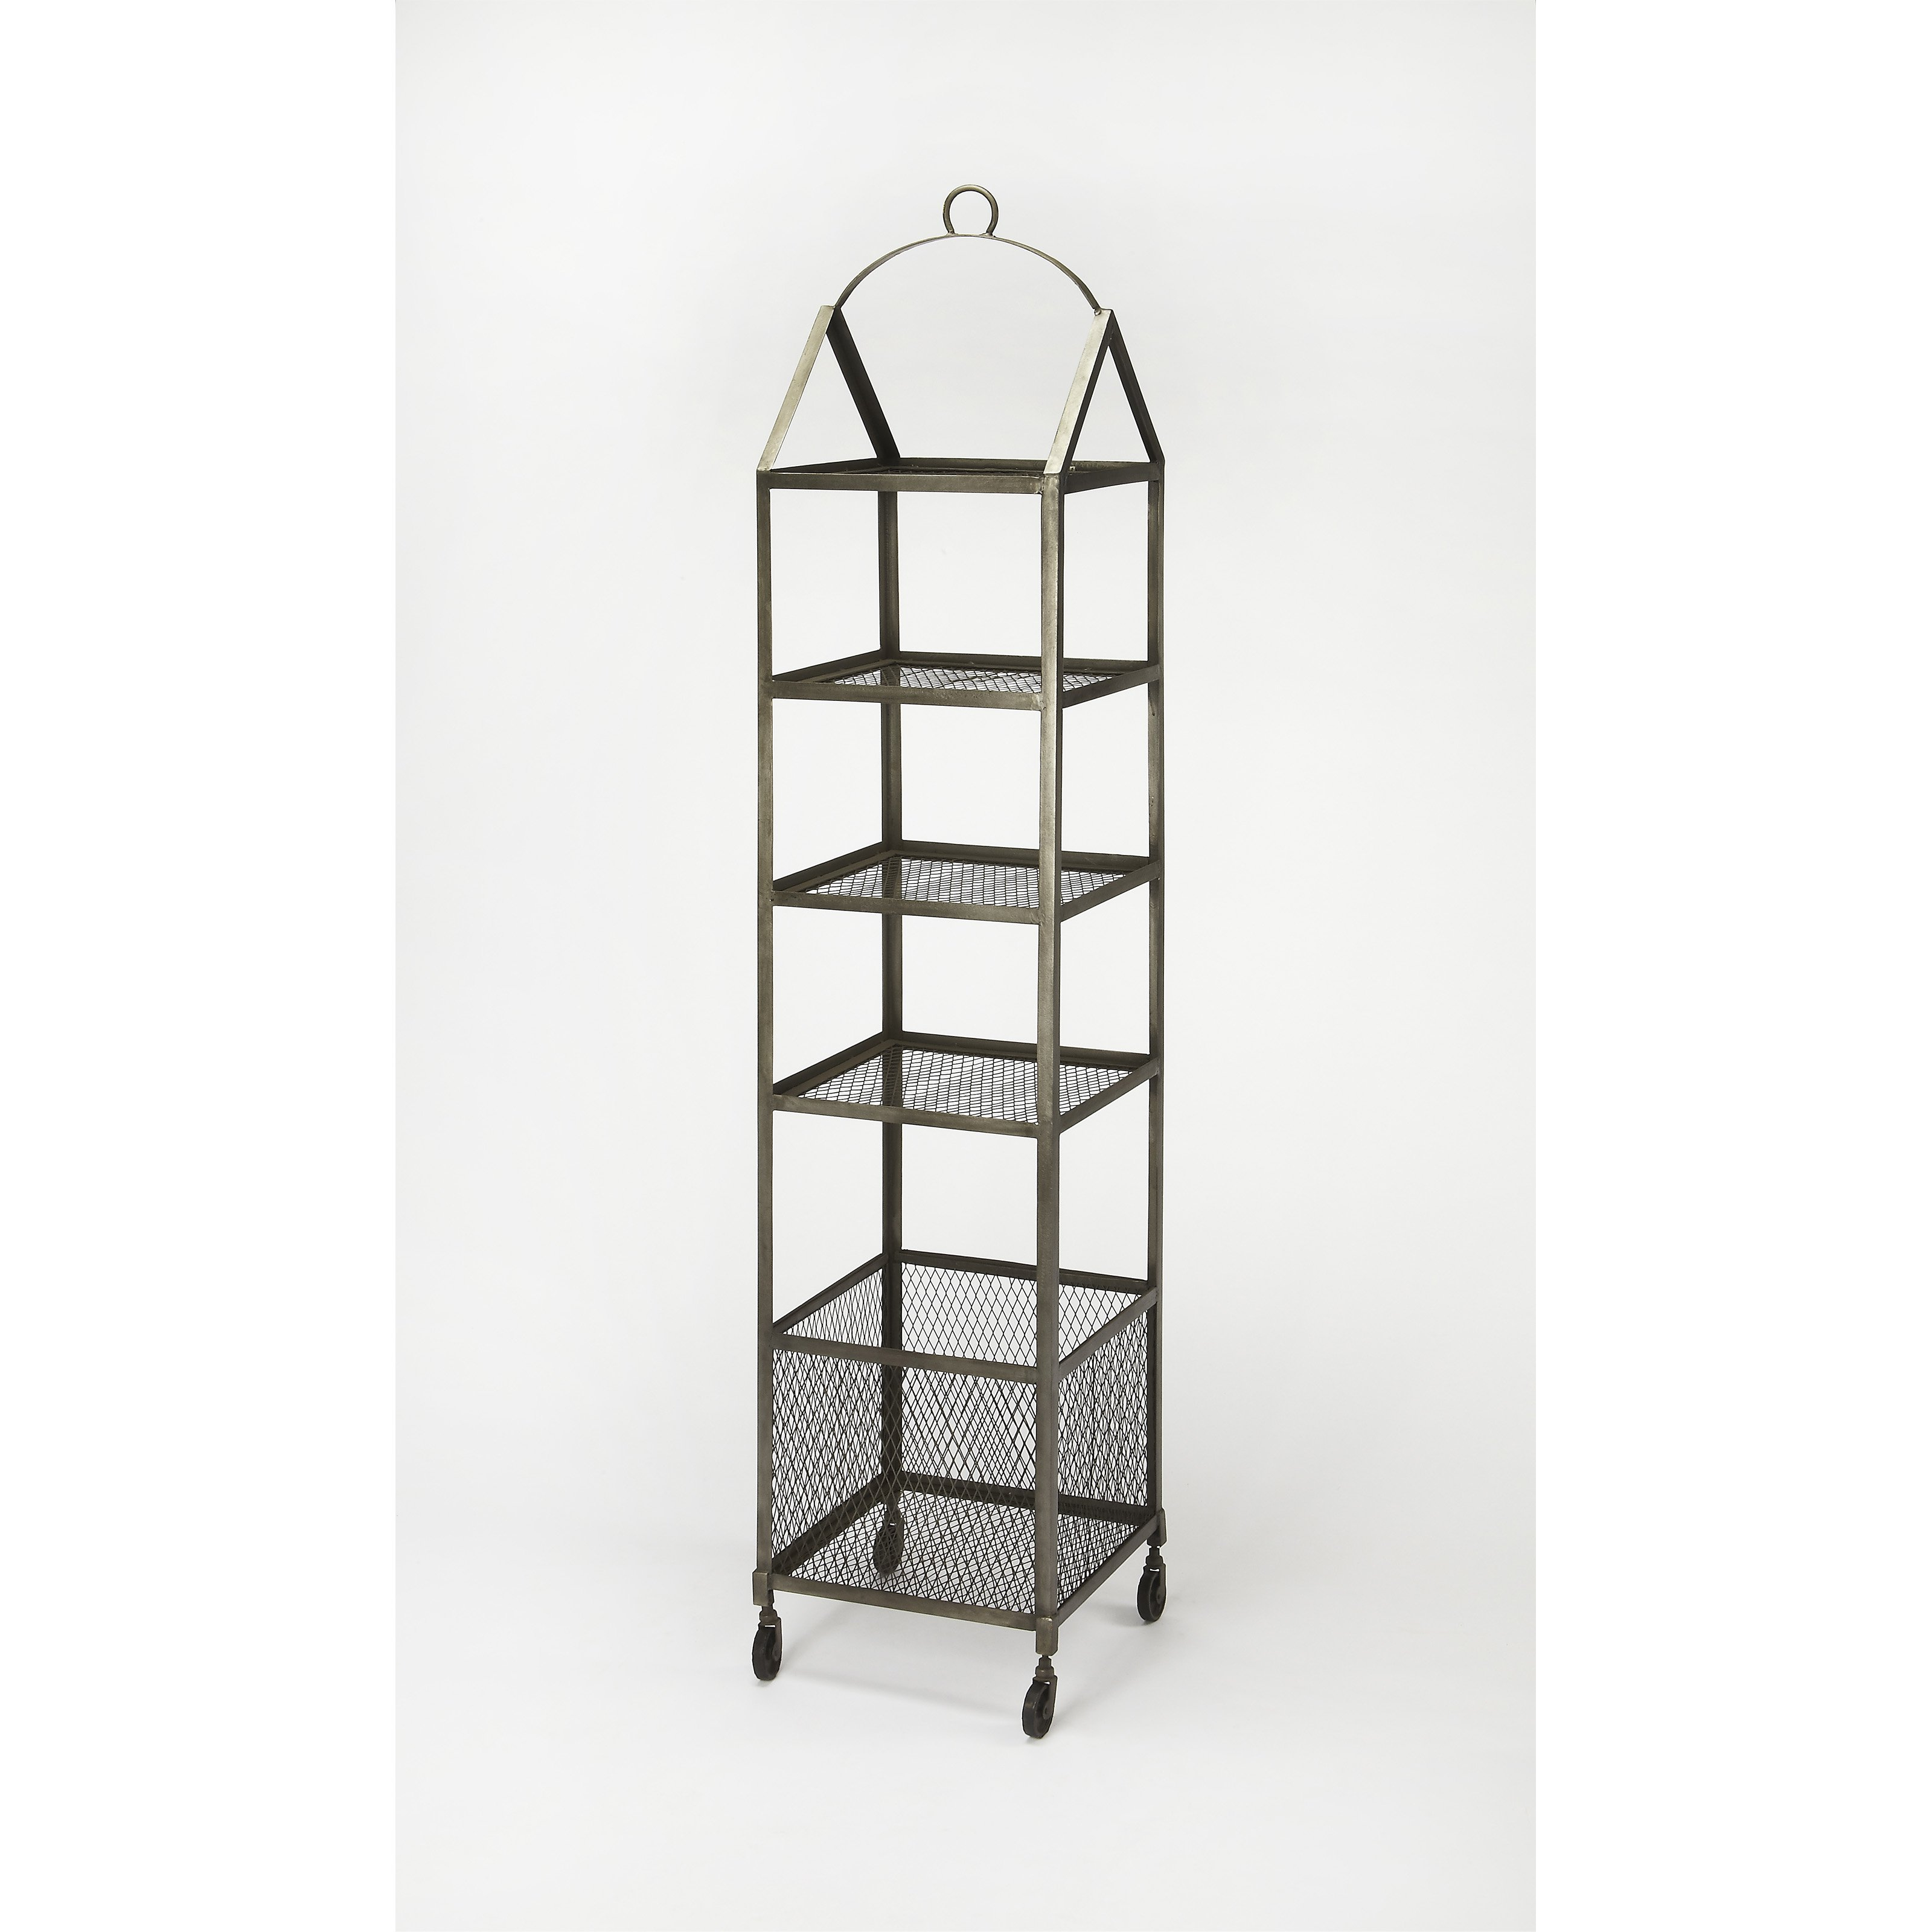 Butler Industrial Chic Trammel Etagere Bookcase Gray by Butler